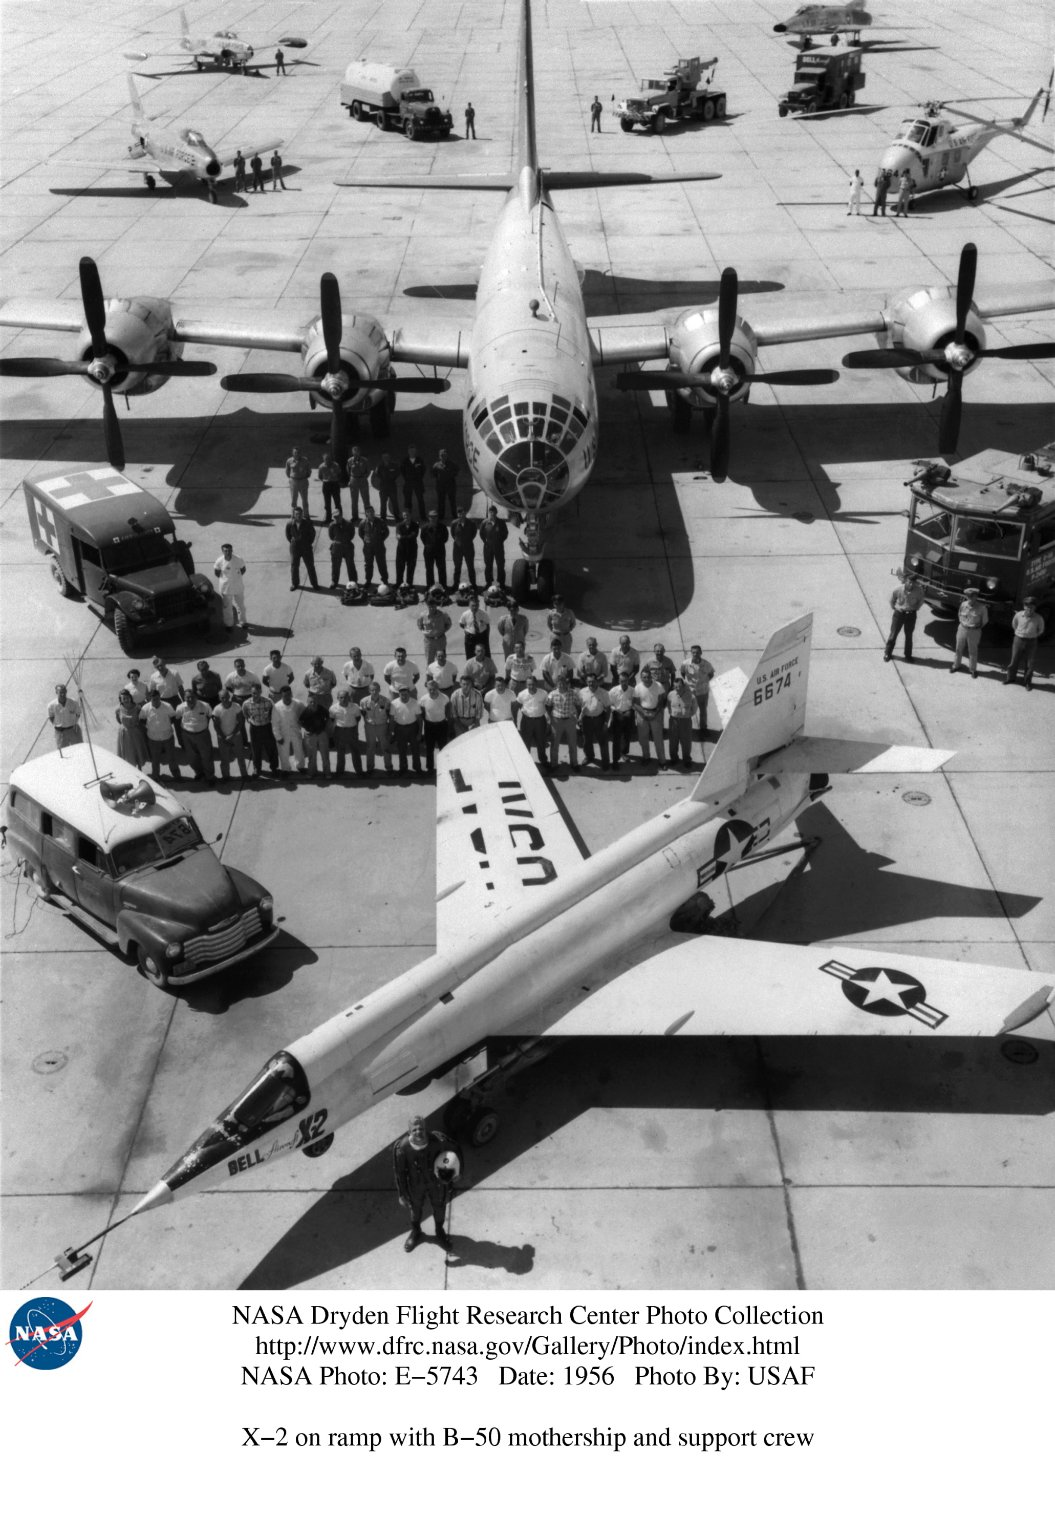 X-2 on ramp with B-50 mothership and support crew